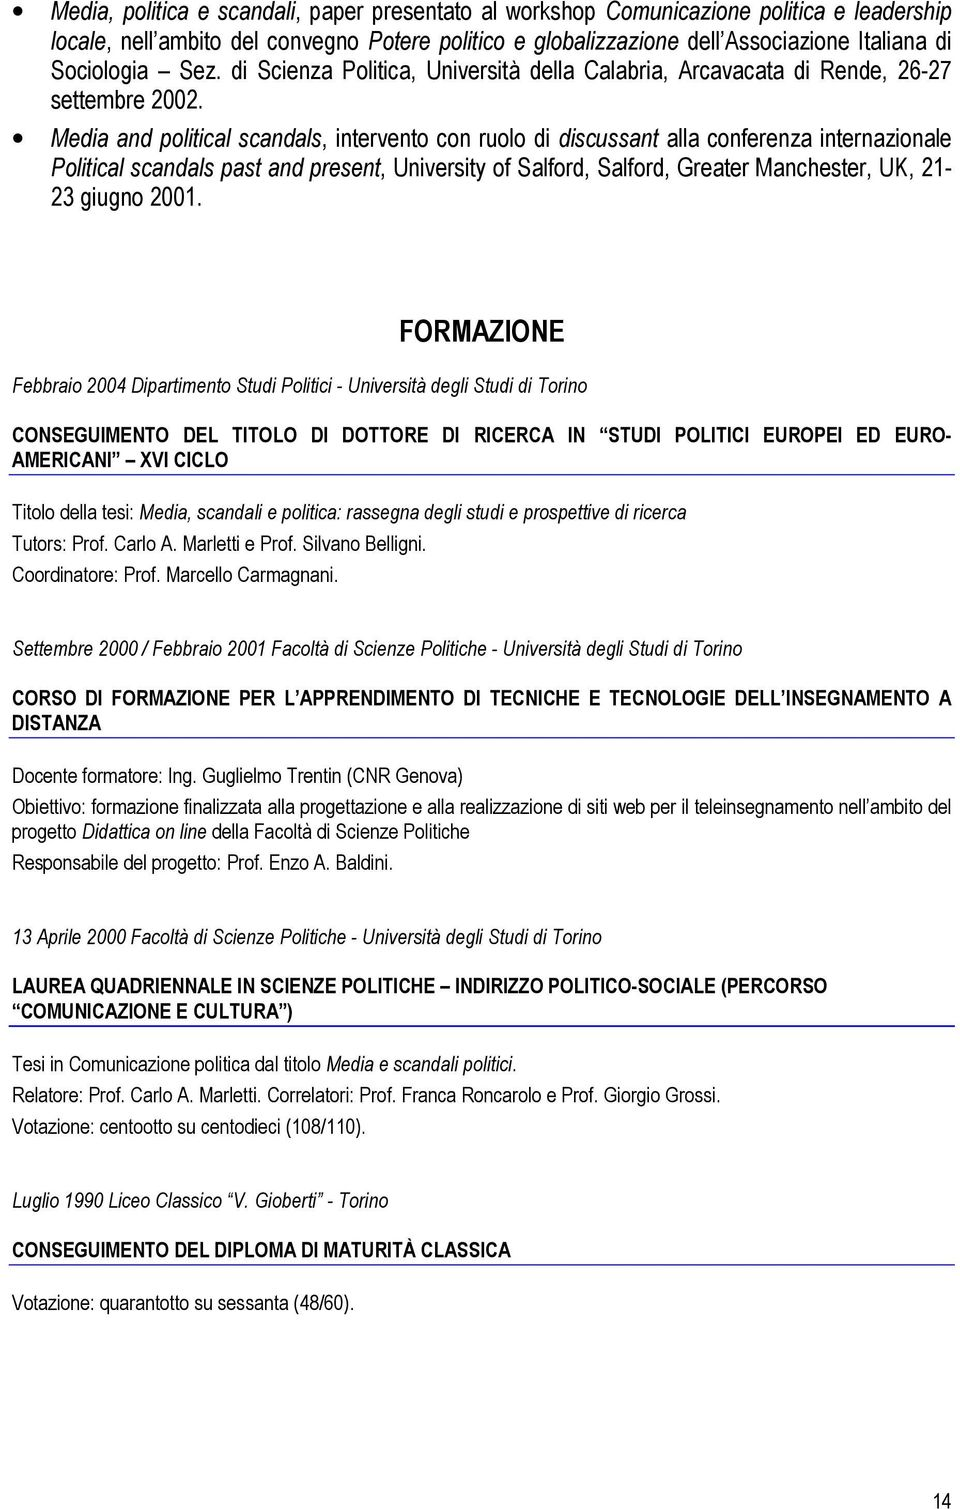 Media and political scandals, intervento con ruolo di discussant alla conferenza internazionale Political scandals past and present, University of Salford, Salford, Greater Manchester, UK, 21-23